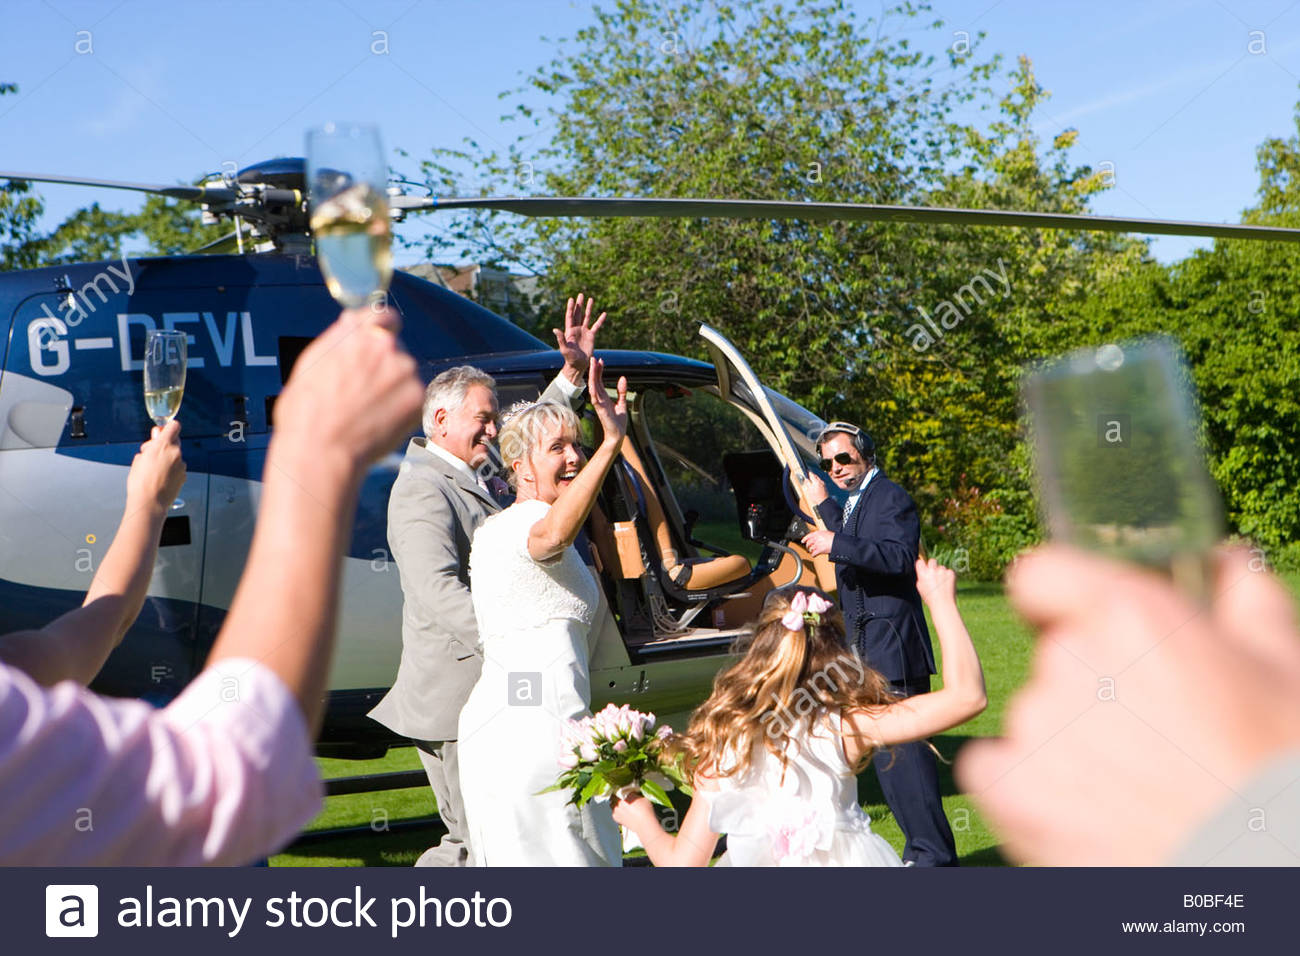 Bride and groom by helicopter waving to wedding guests - Stock Image